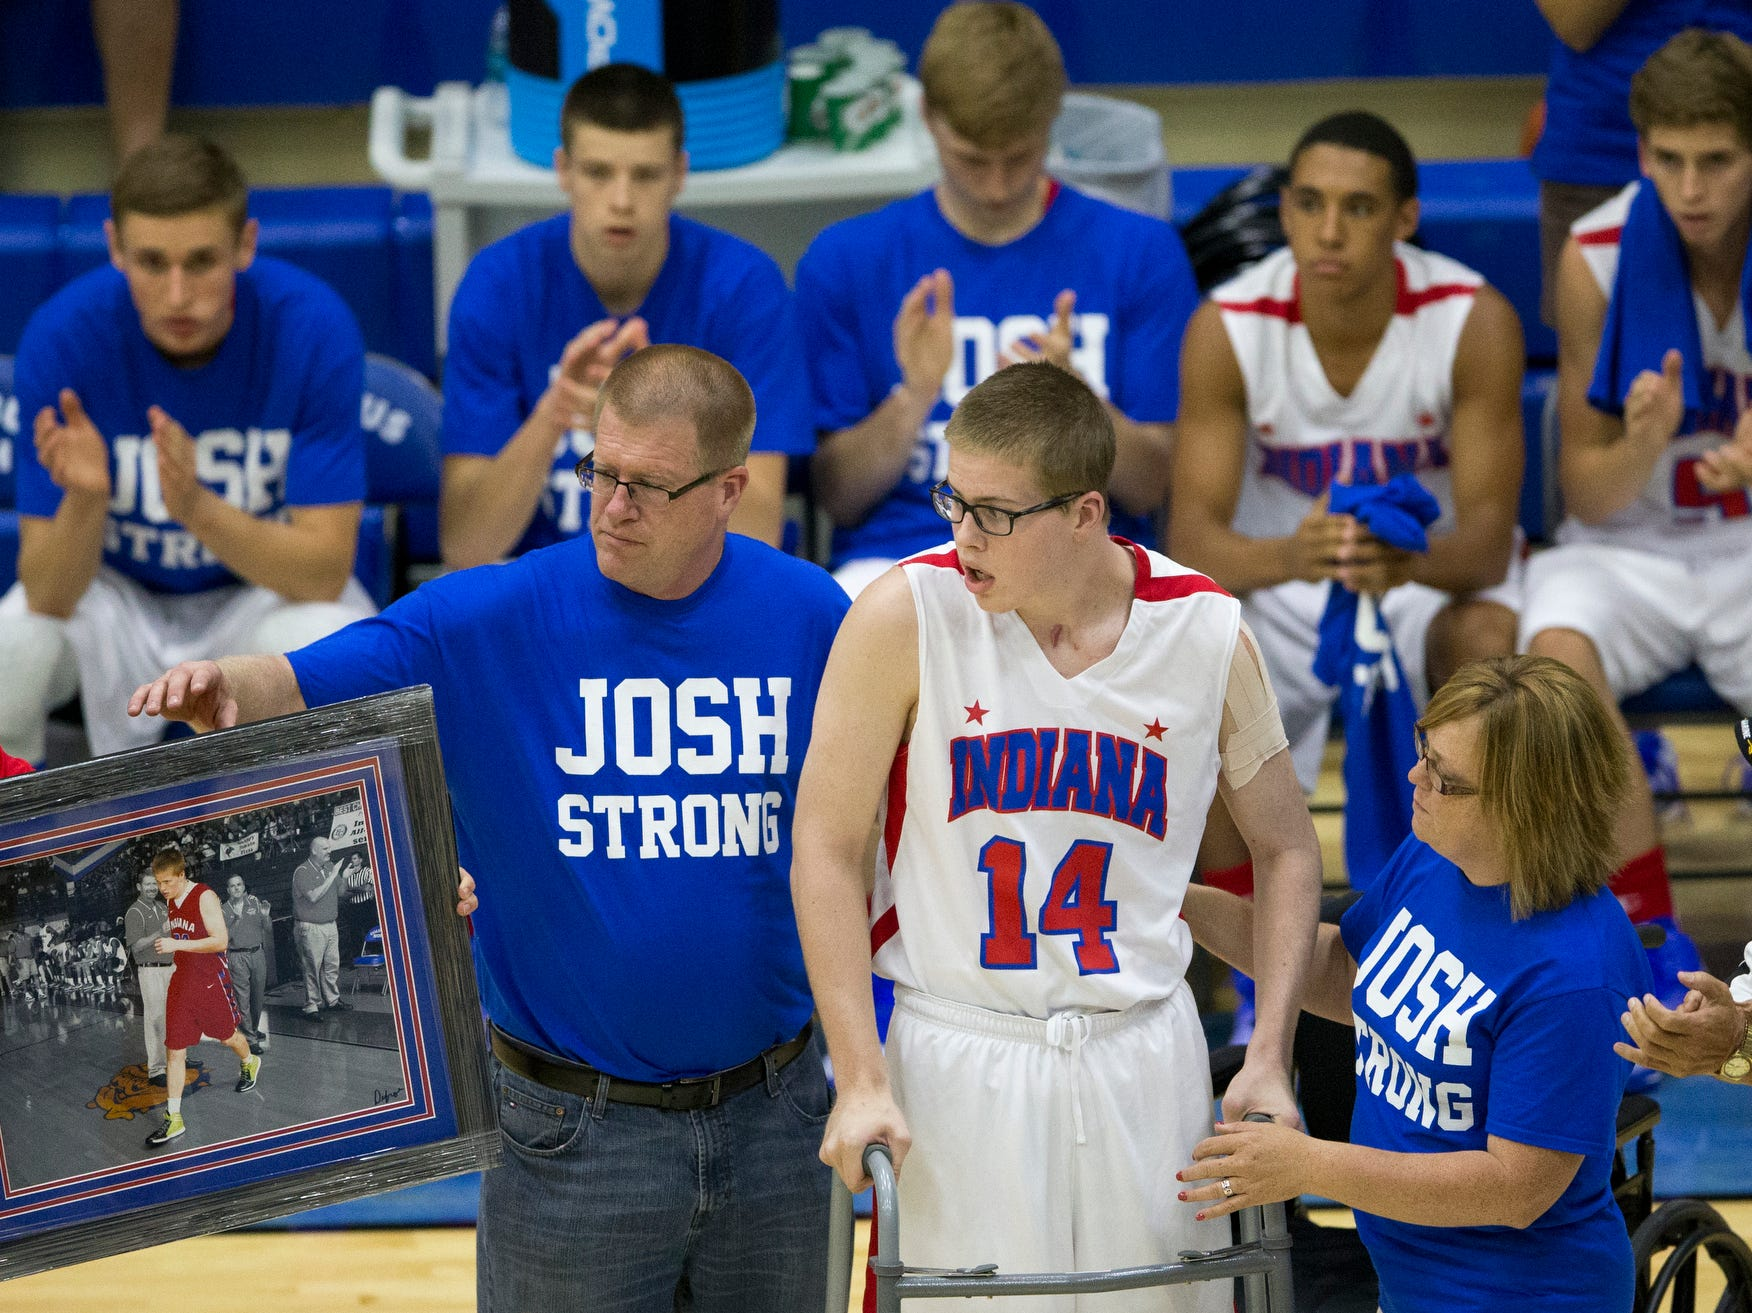 Josh Speidel, a seriously injured player for Columbus North High School, takes a few steps as he is introduced before Indiana Basketball All-Stars action against the Indiana juniors, Columbus North High School,, June 10, 2015.